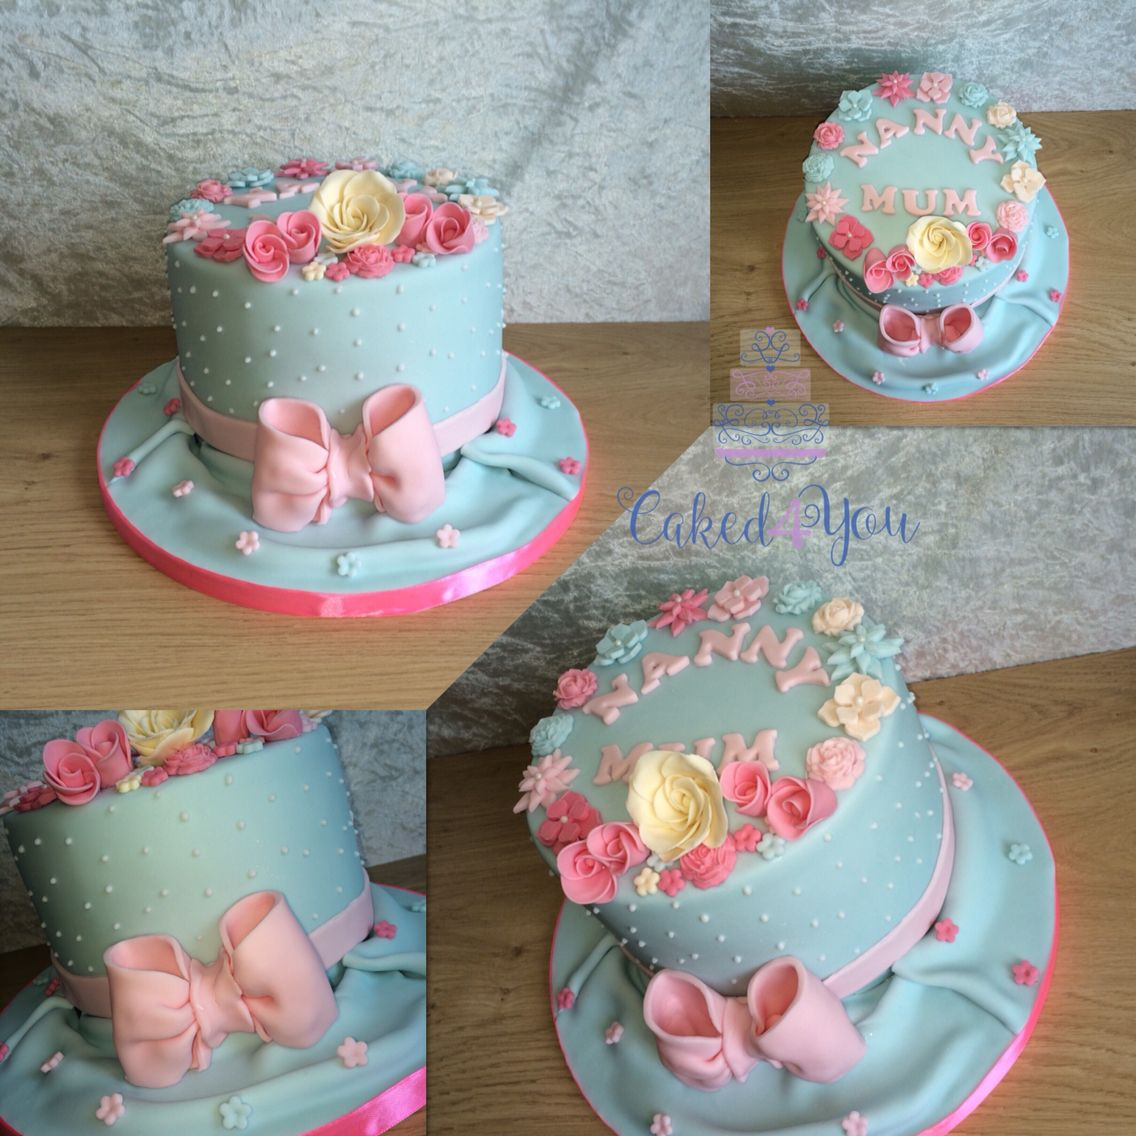 Shabby Chic Themed Birthday Cake With Handmade Flowers And Bow